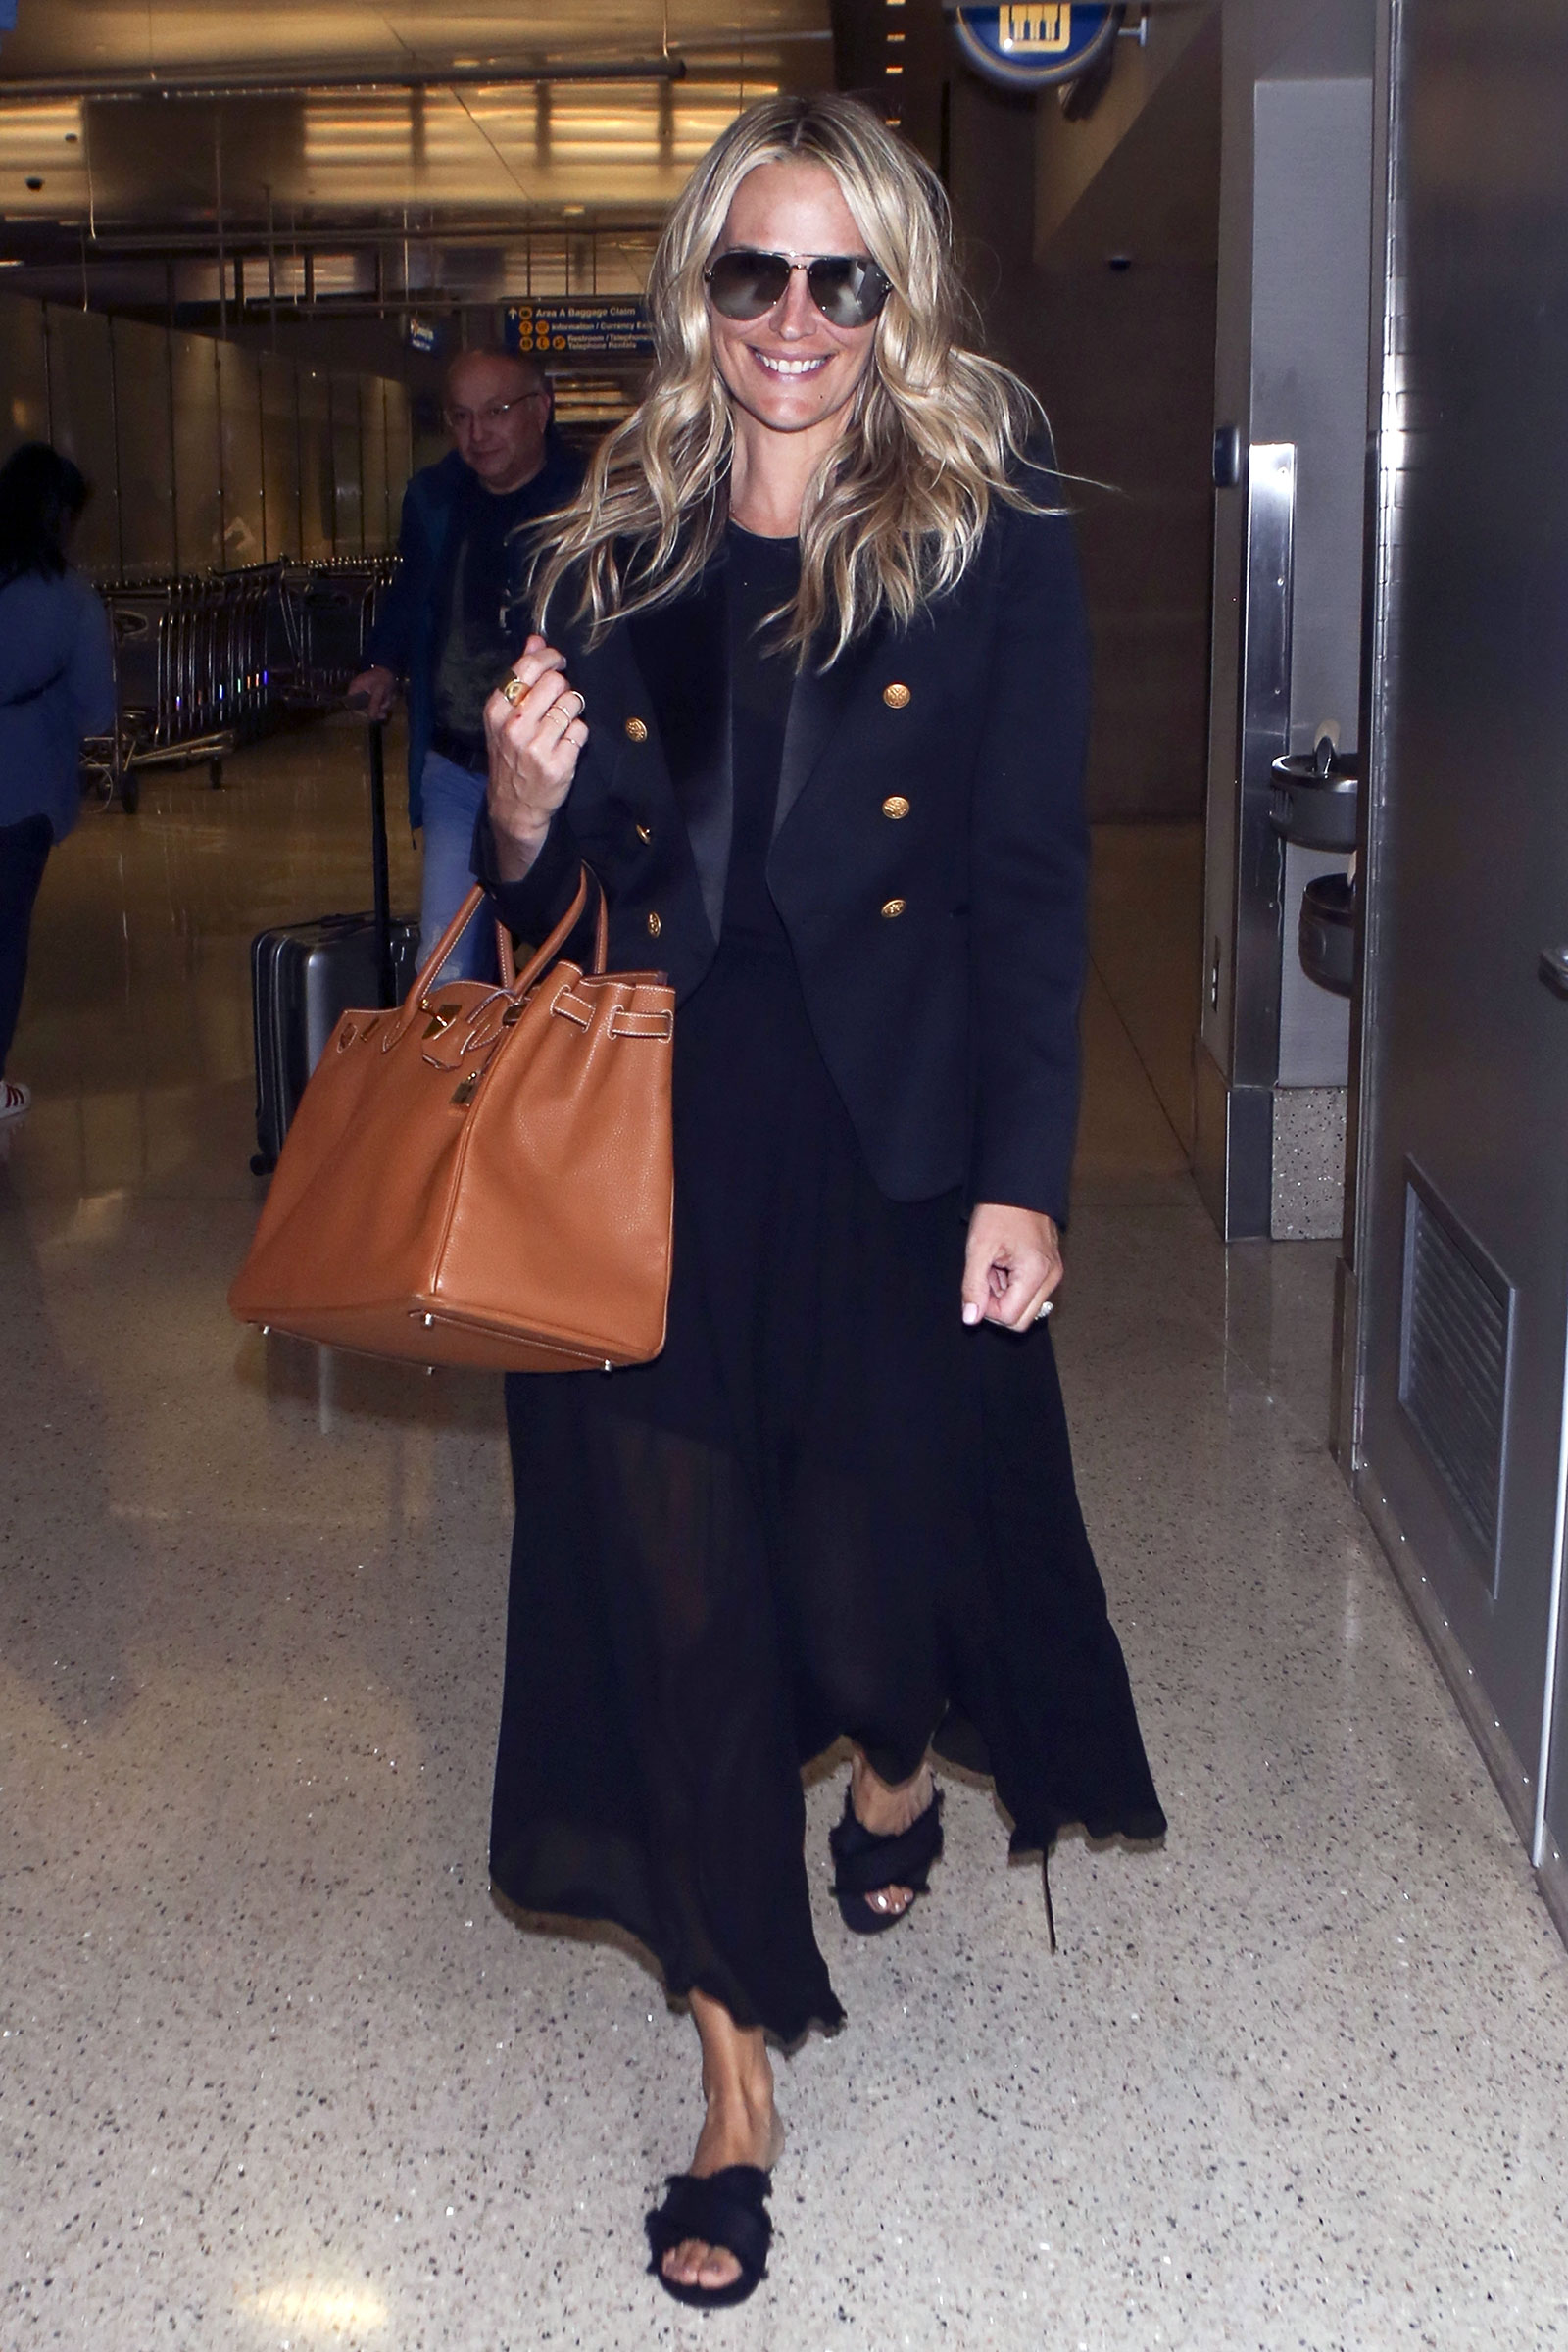 Molly Sims fashion style is classic and chic.